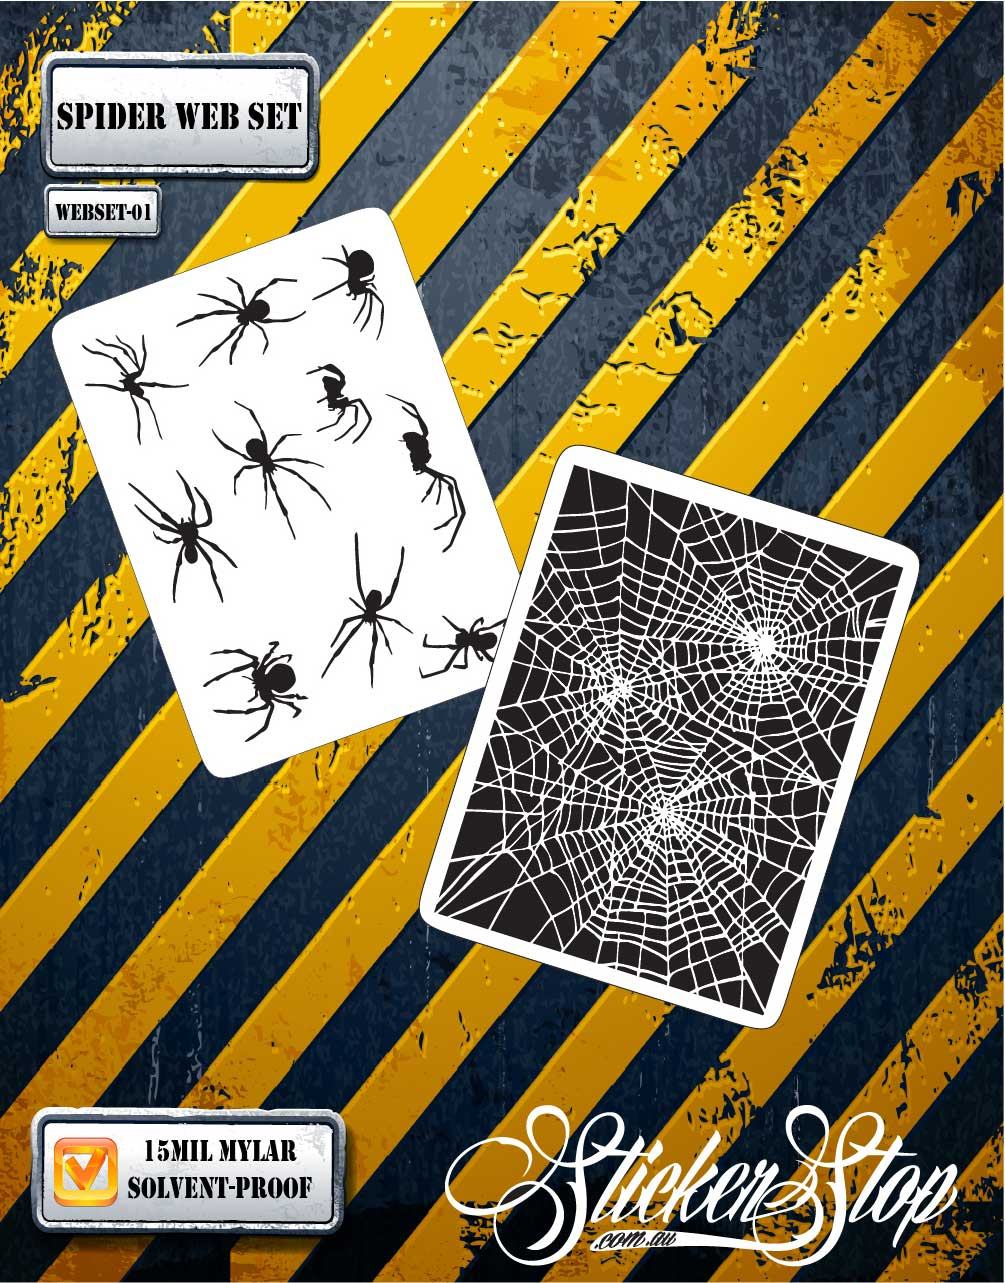 Spider Web Airbrush Stencil (Set 1)